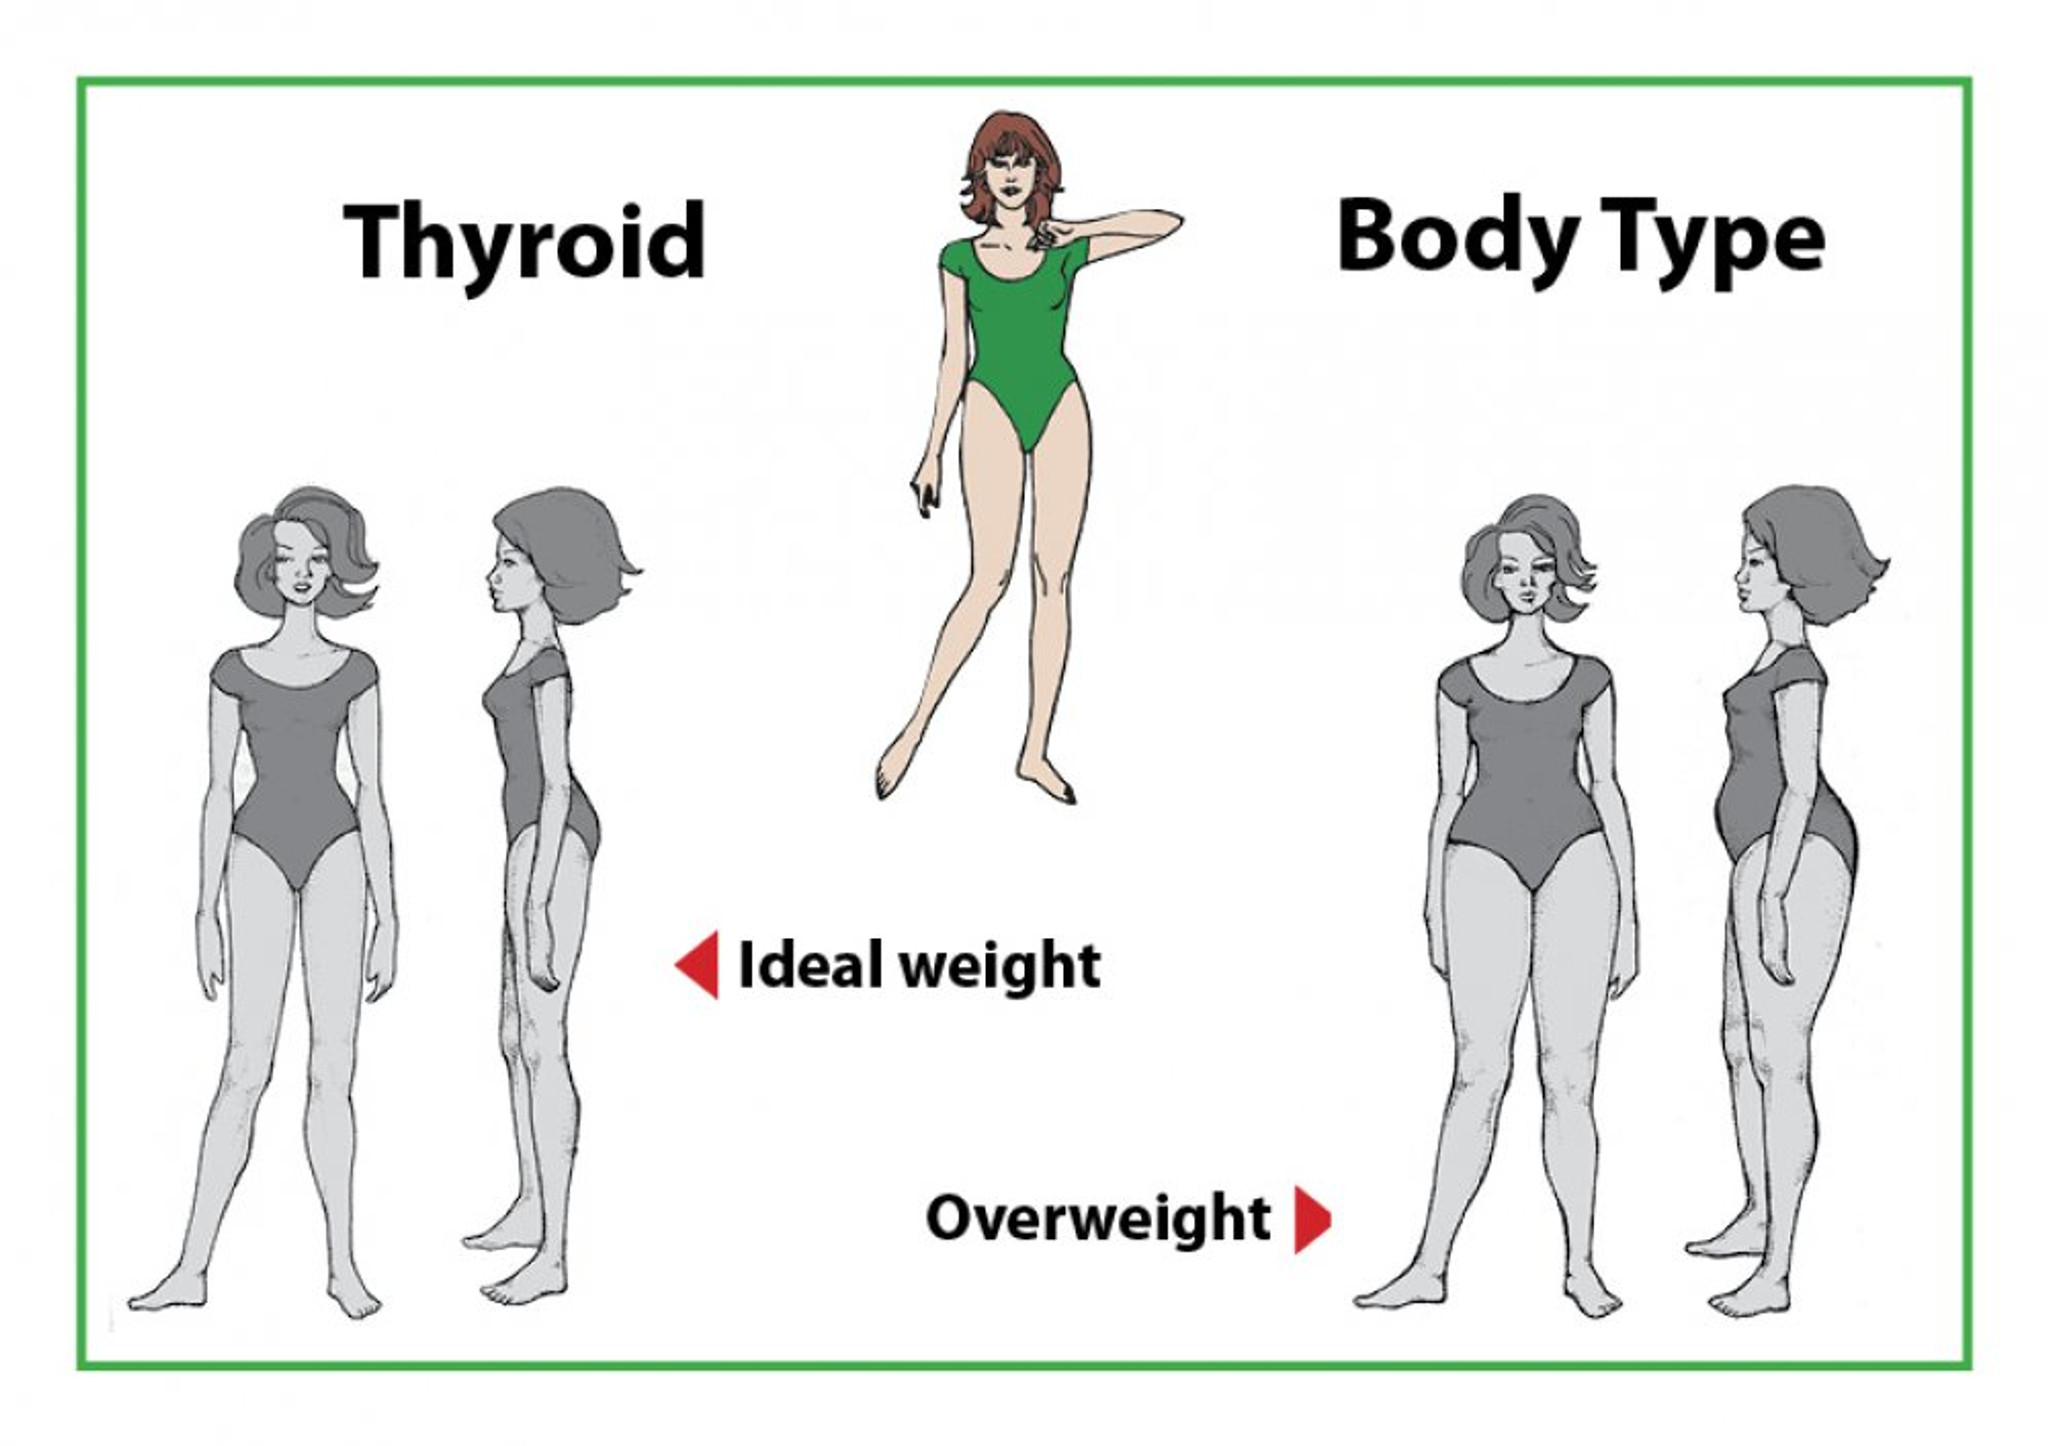 Thyroid Body Type Information